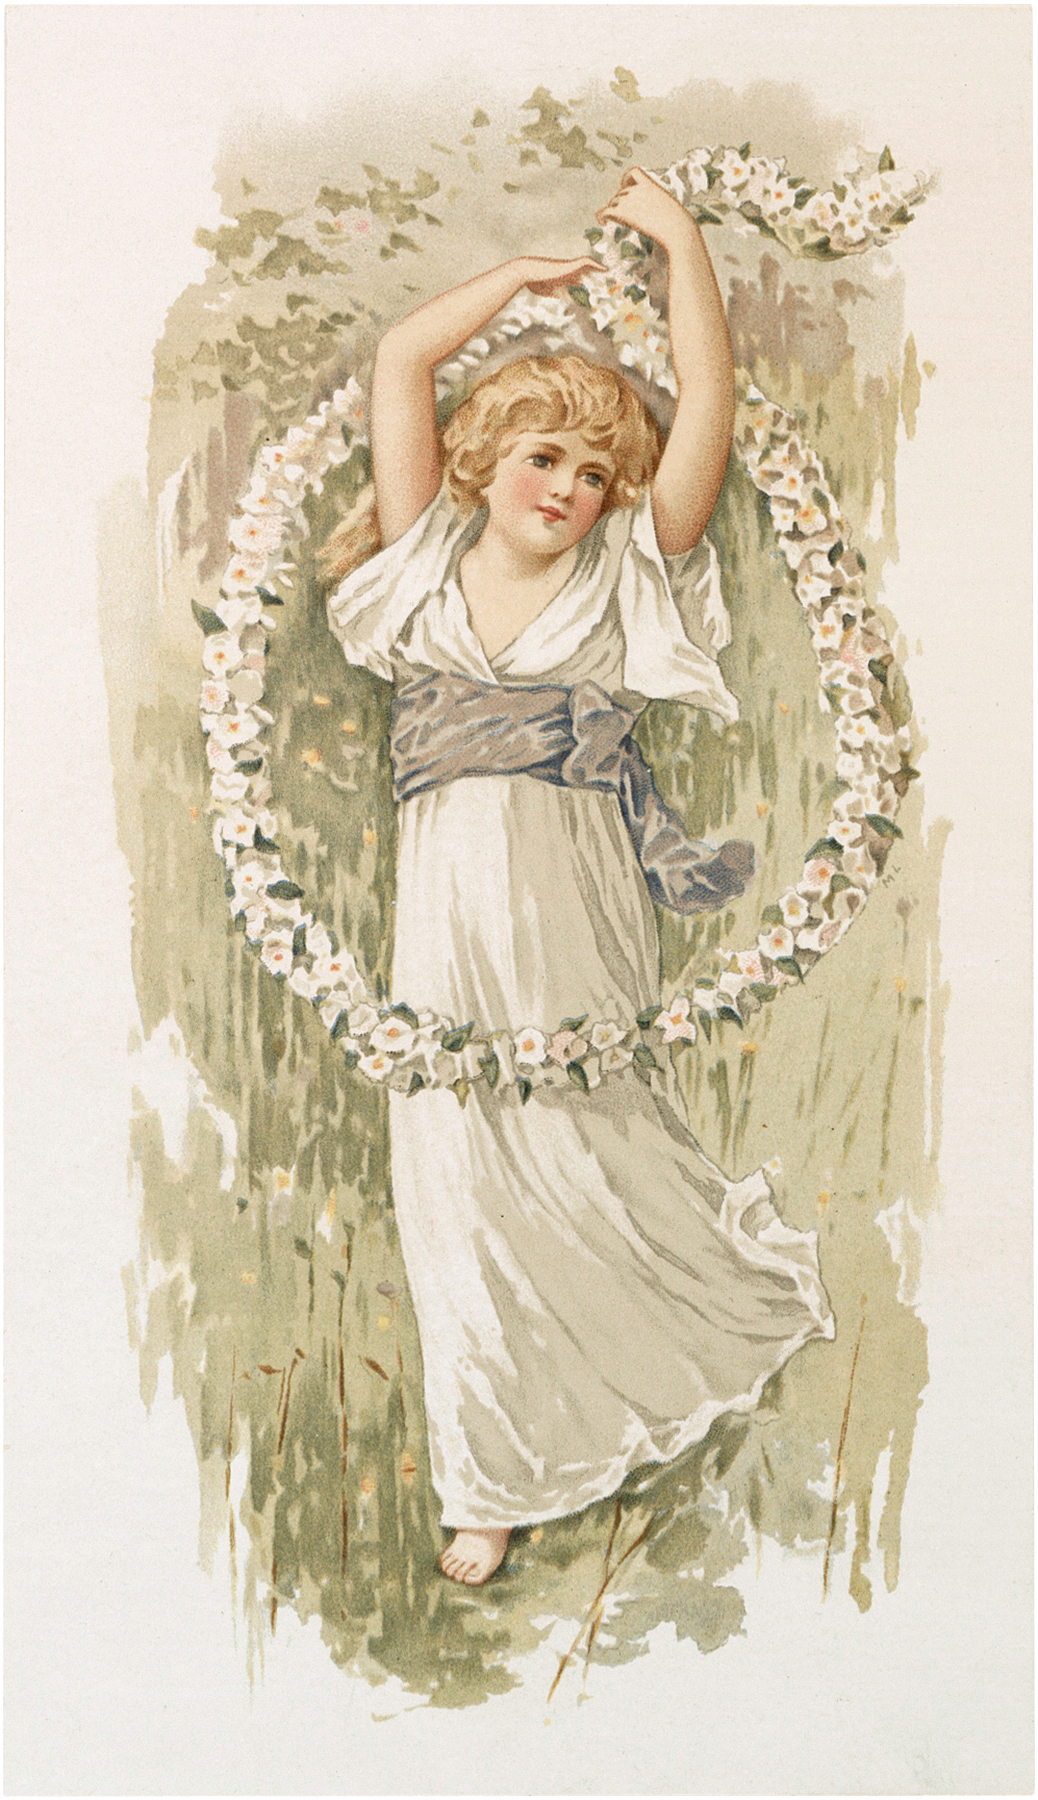 Vintage Flower Child Image